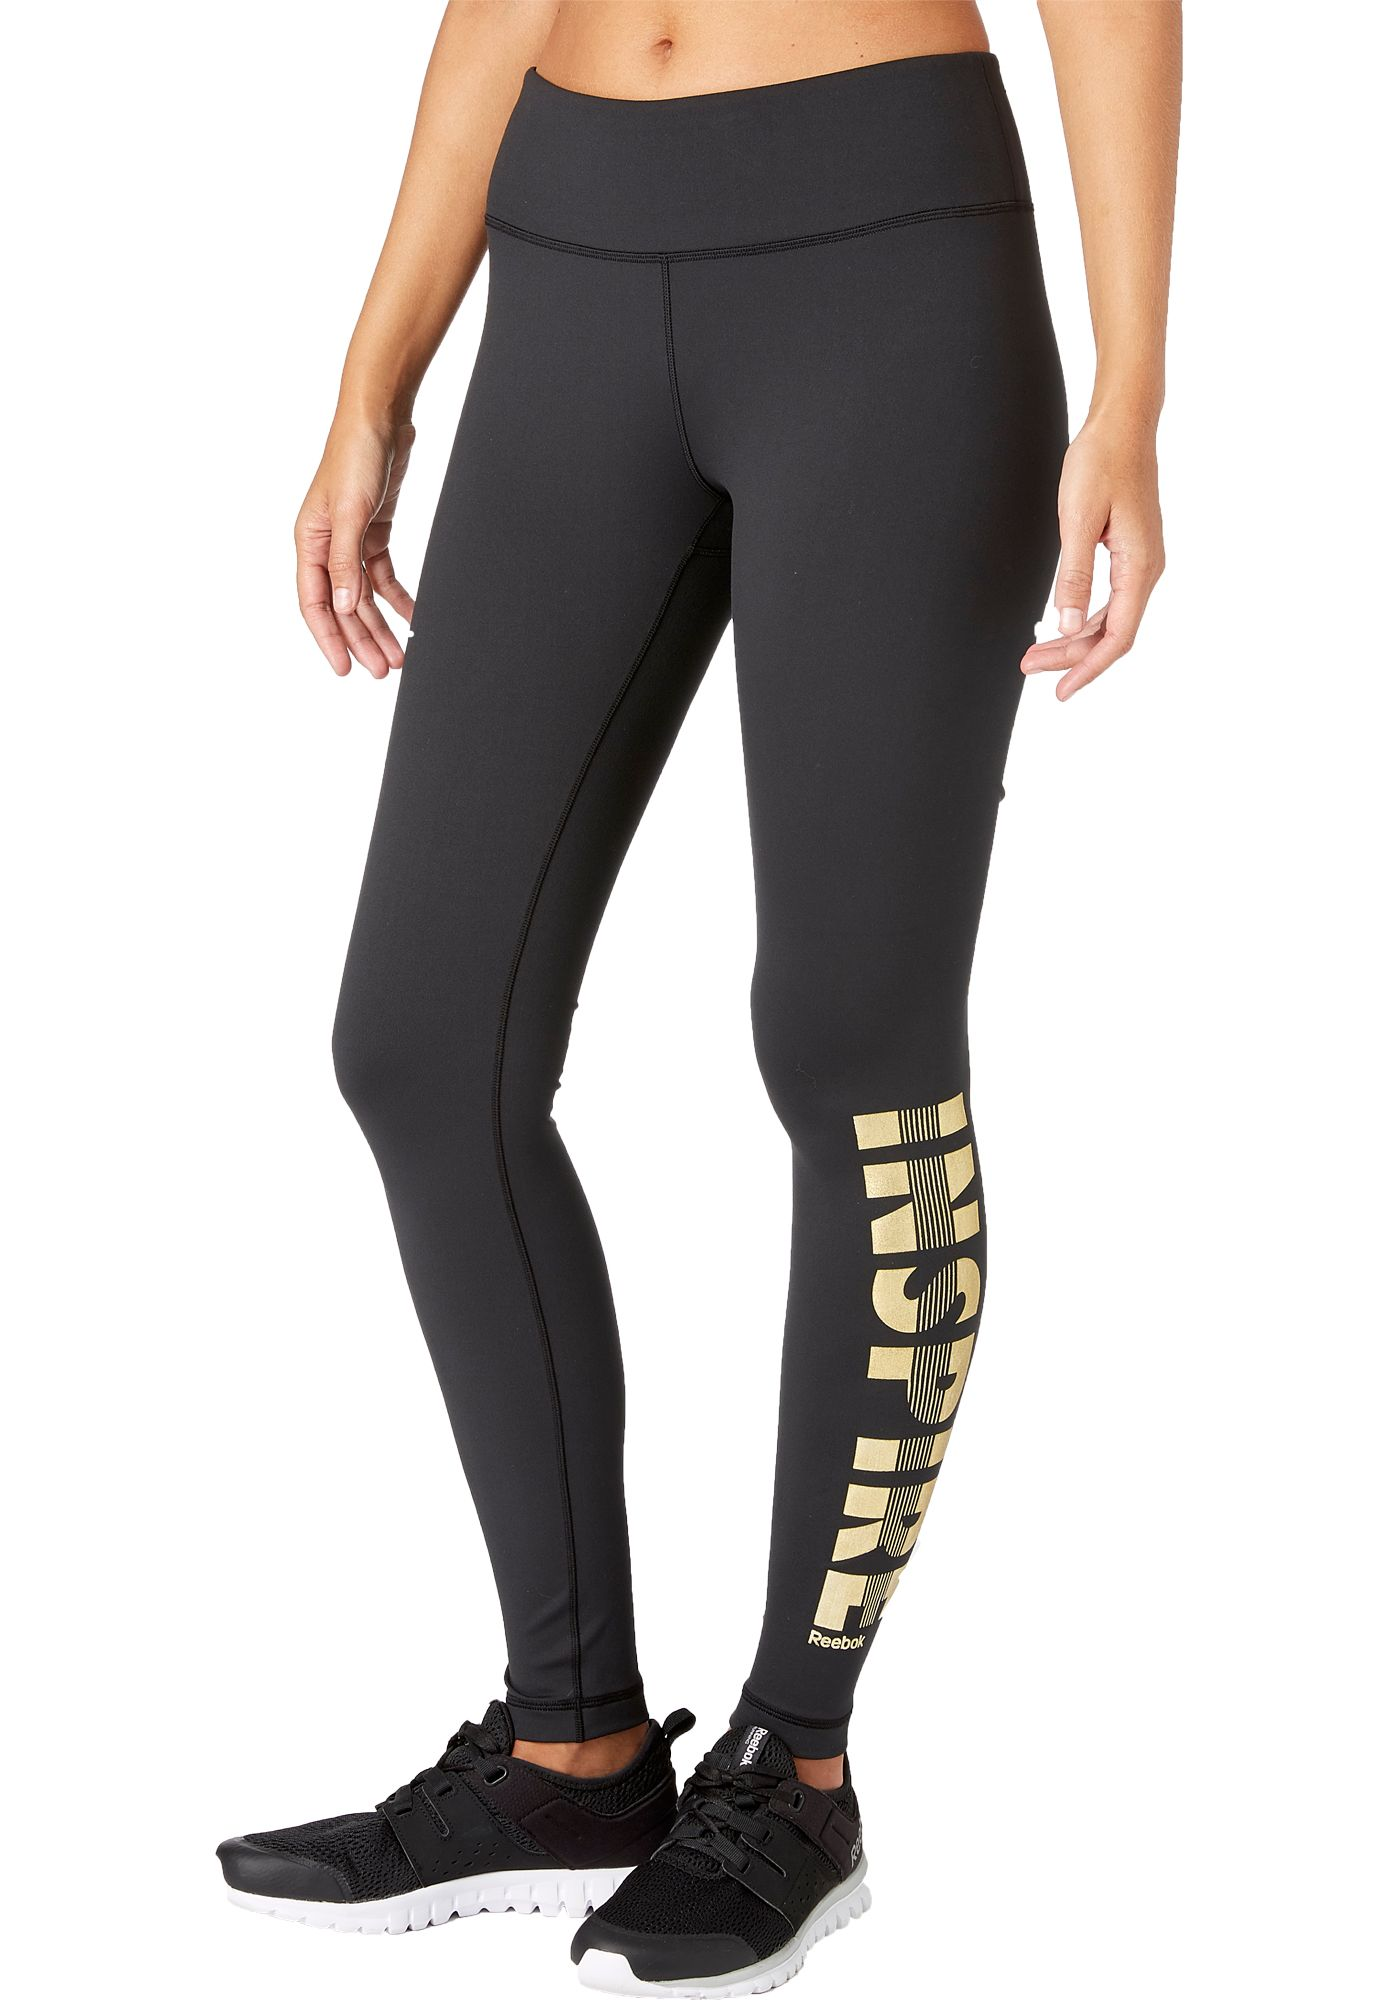 Reebok Women's Performance Inspire Graphic Tights